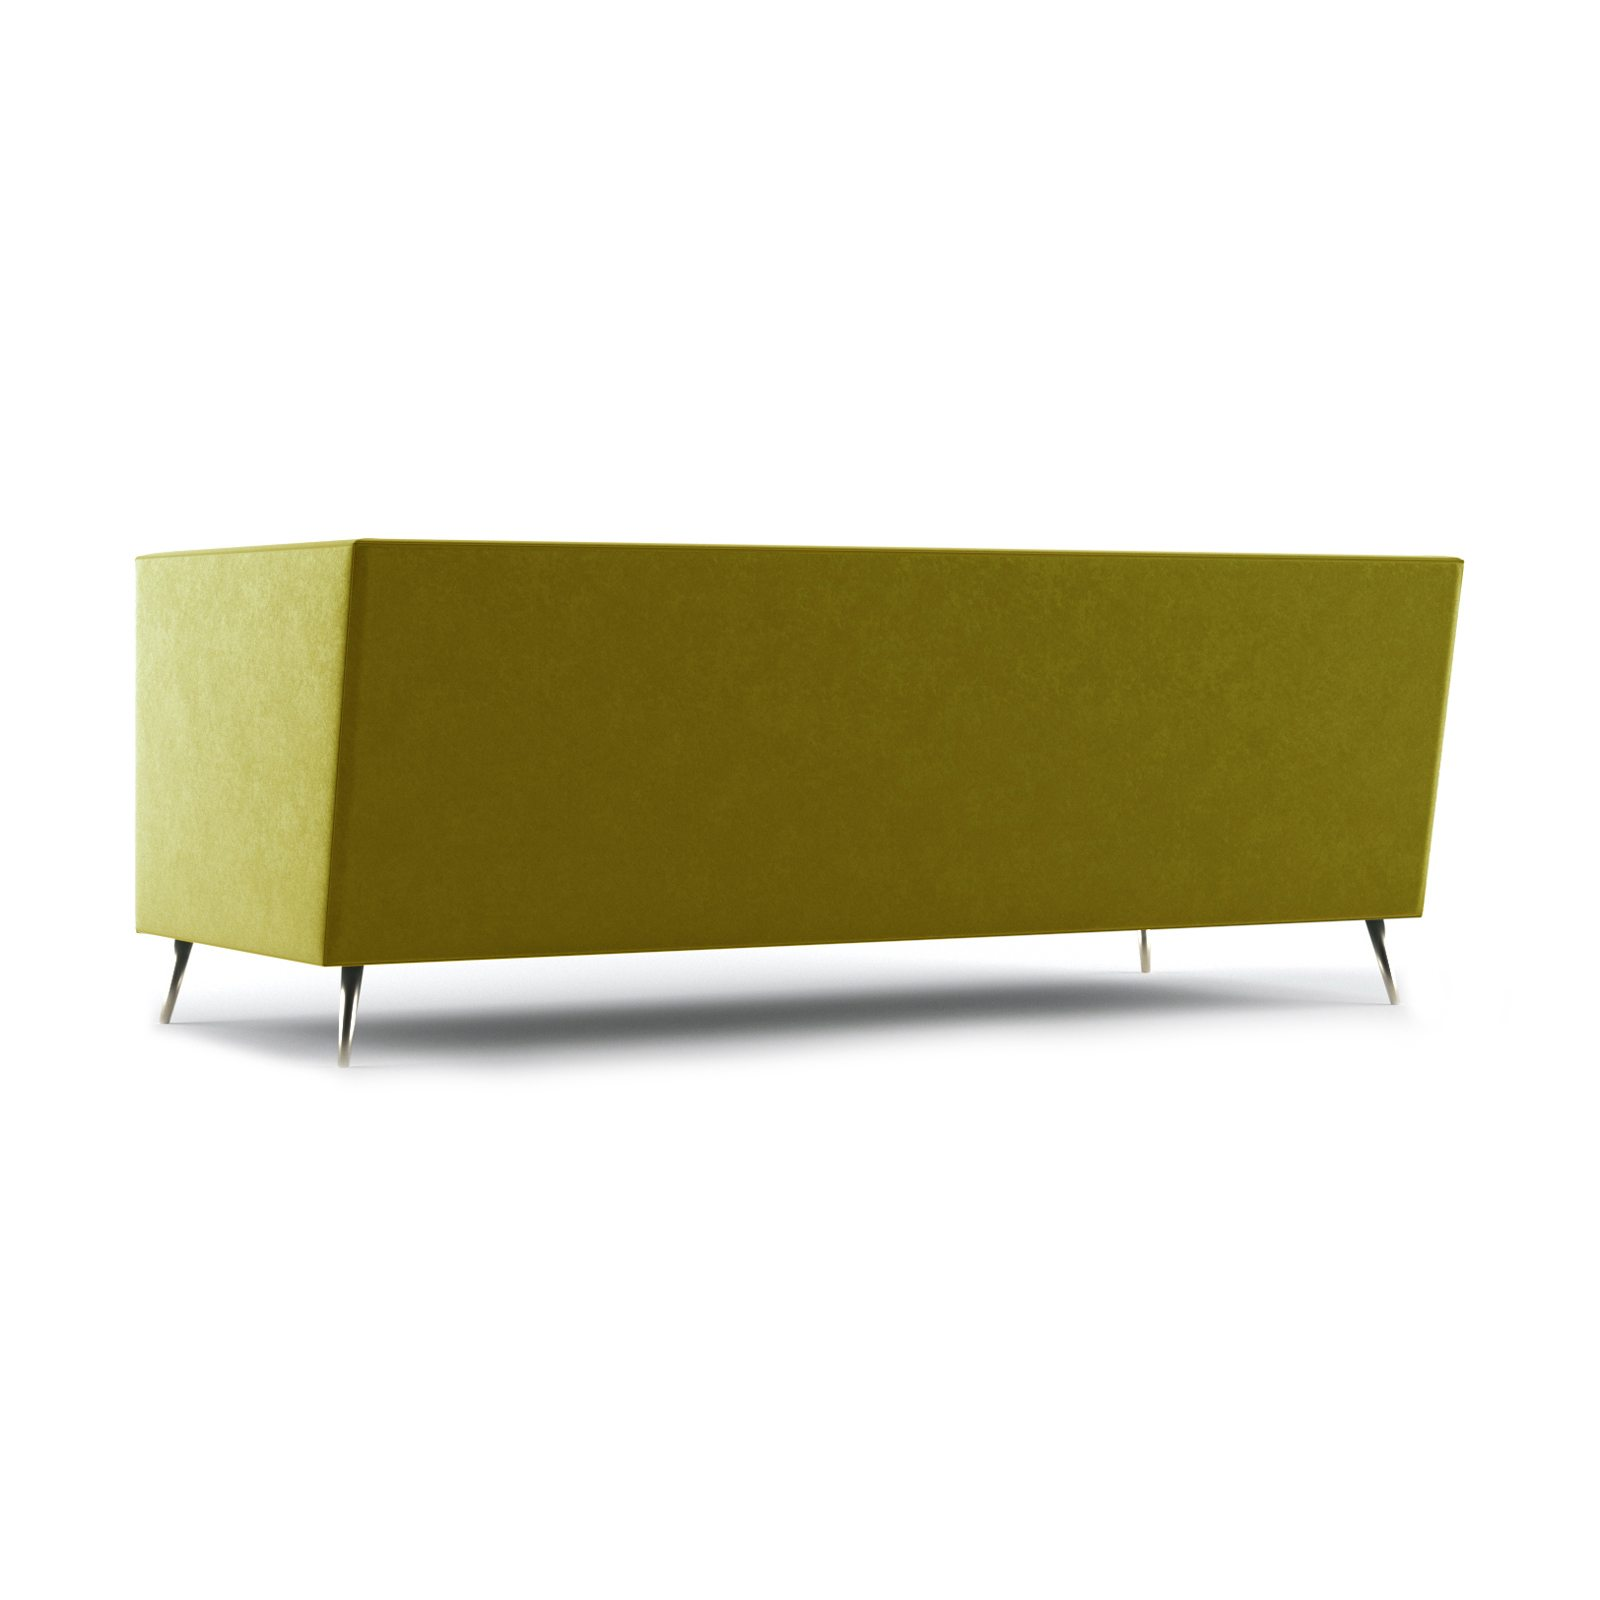 Connick Three and a Half Seater Sofa by Bonham & Bonham Gold 06